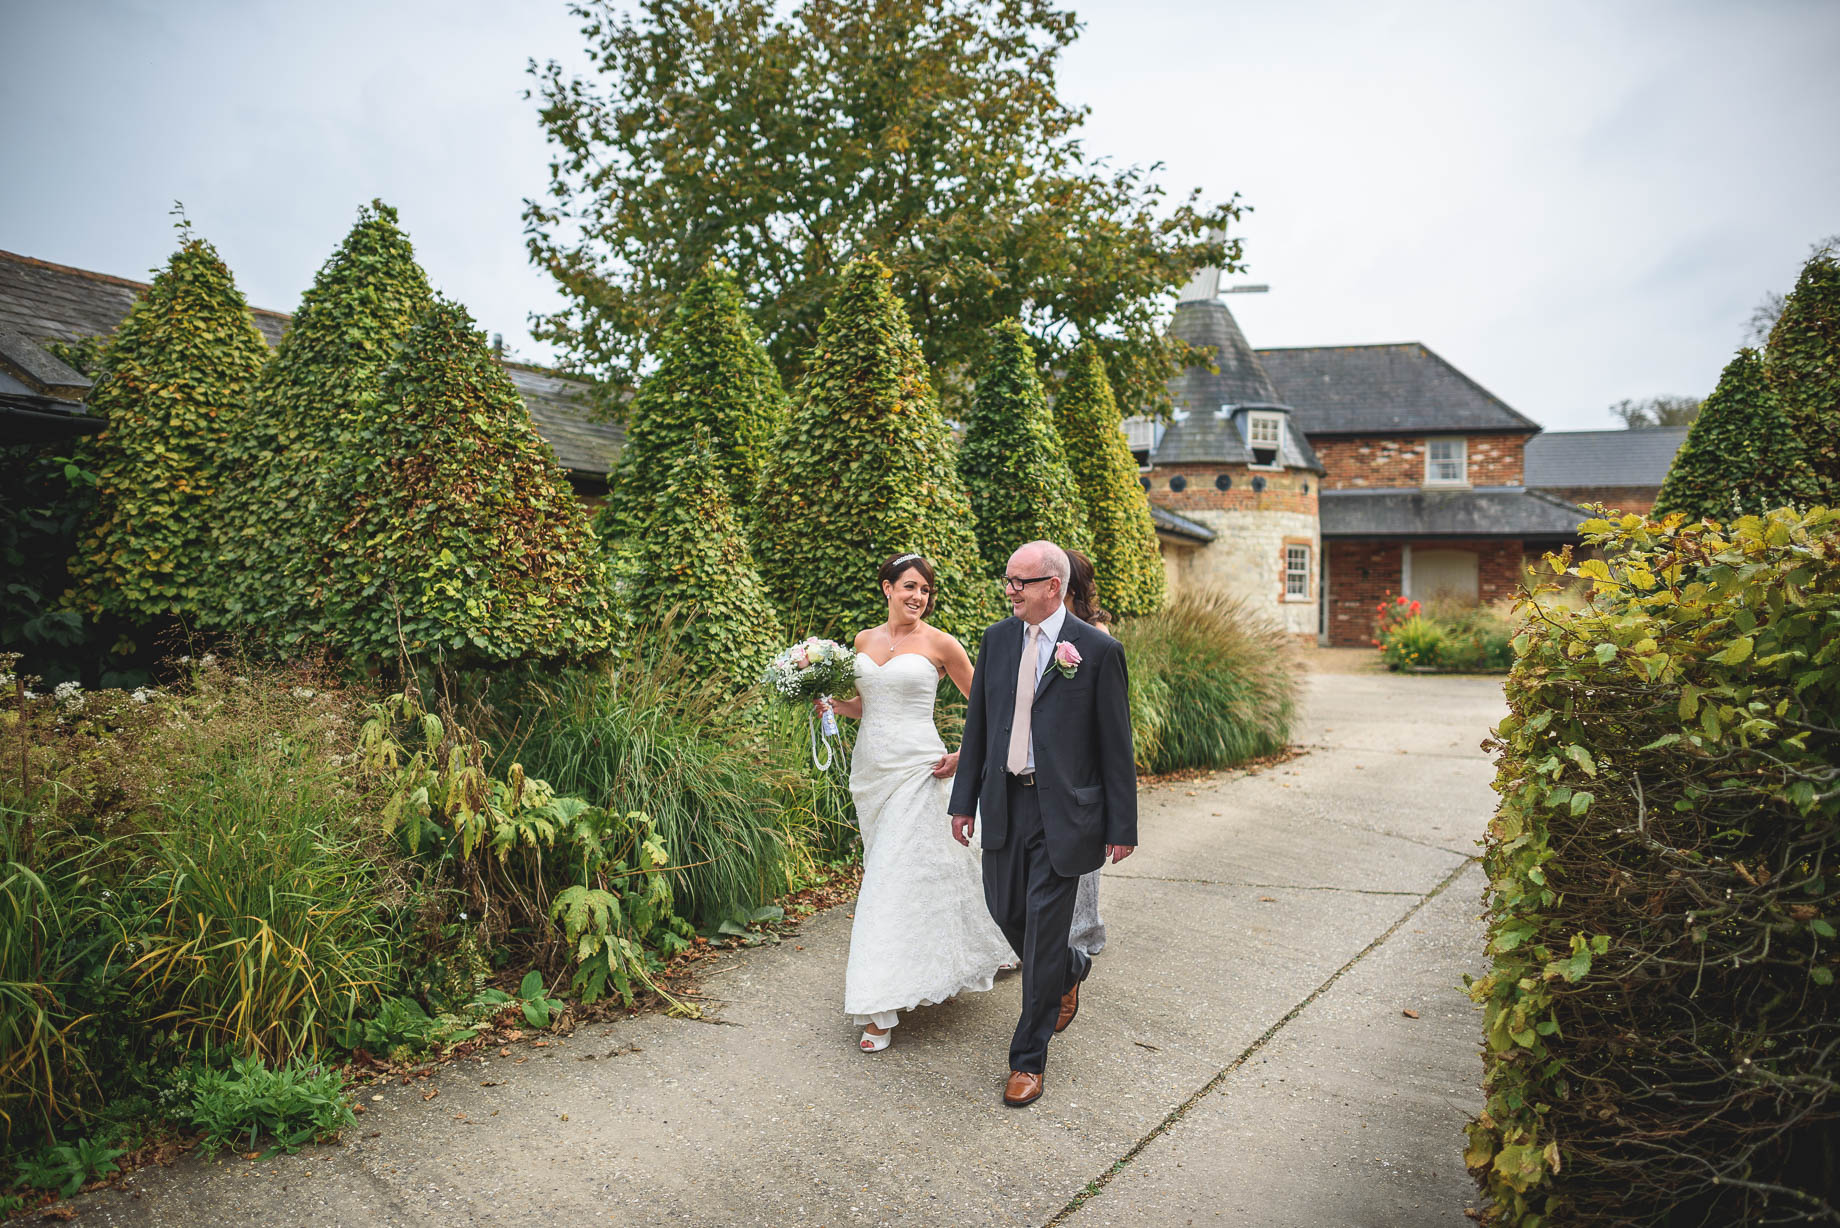 Bury Court Barn wedding photography - Guy Collier Photography - Karen and John (47 of 166)